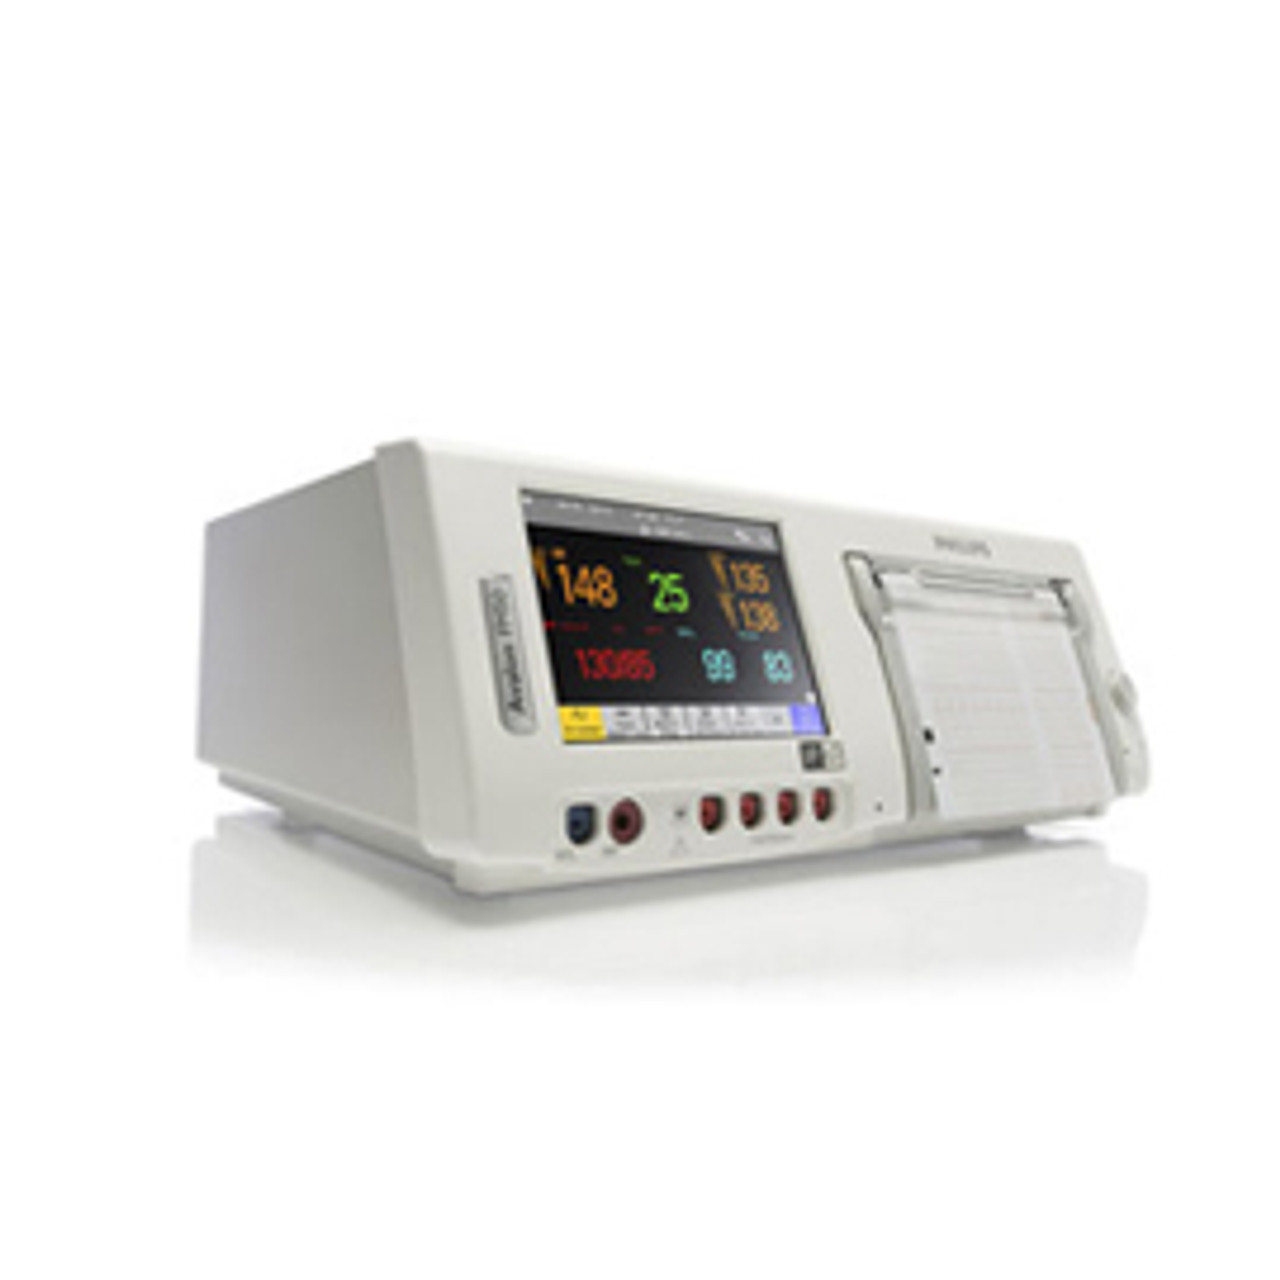 Fetal / Maternal Monitors